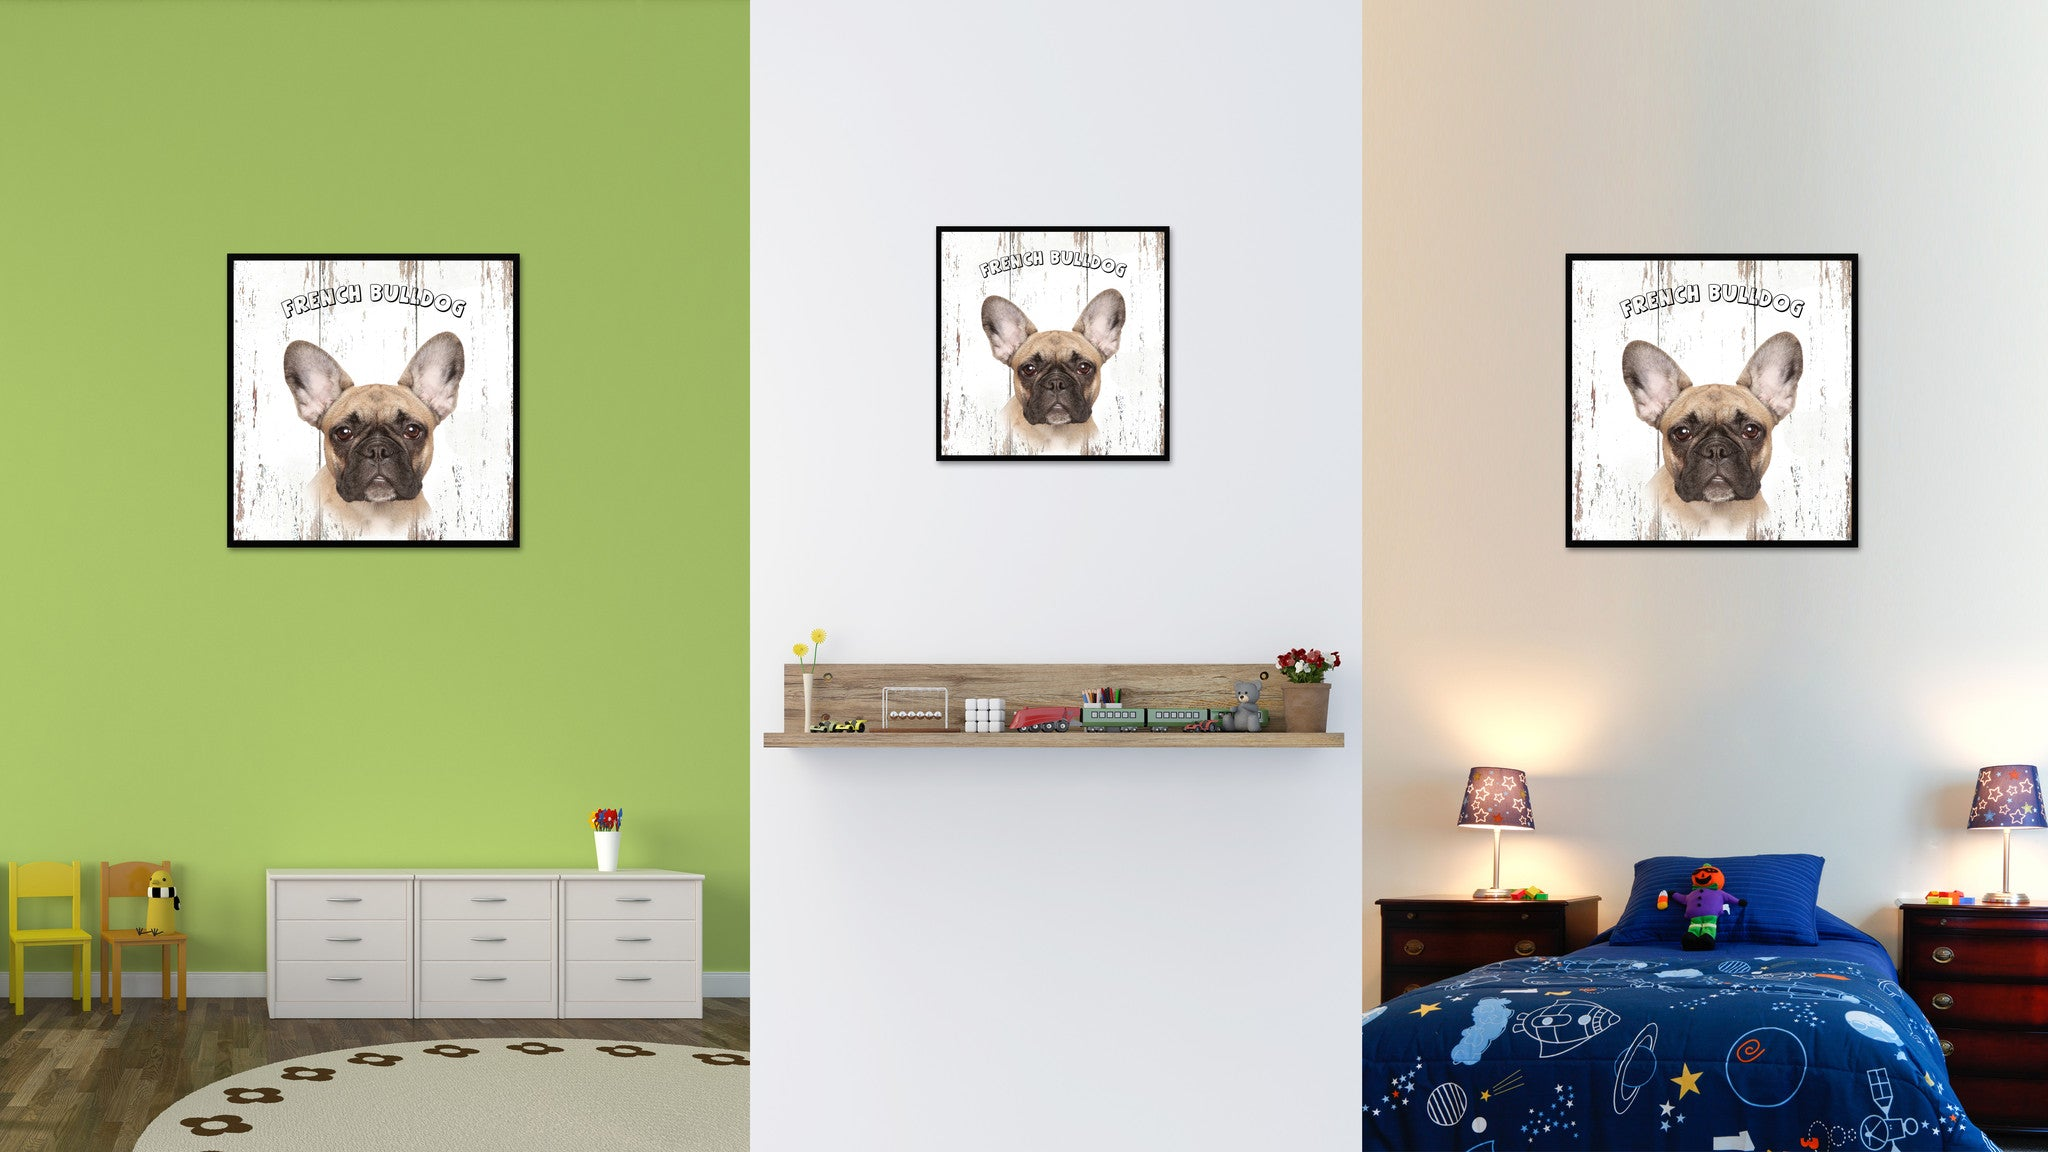 French Bulldog Dog Canvas Print Picture Frame Gift Home Decor Wall Art Decoration